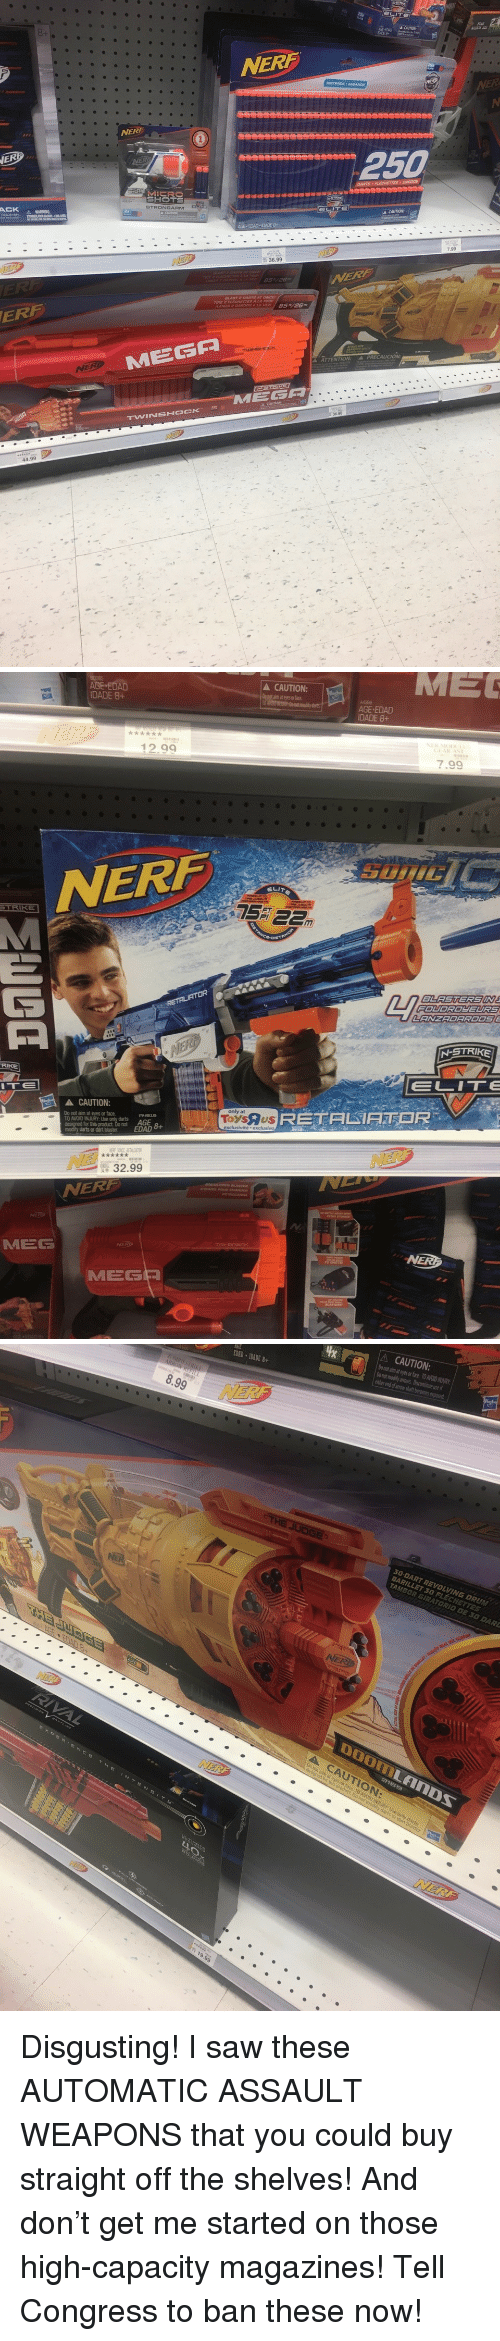 Dad, Saw, and Nerf: NERF  DISTANCE ALCANCE  ER  NERF  250  SHOTS  STRONGARM  AGE EDAD IDADE 8+  36.99  7.99  ERF  NE  A ATTENTION: ▲ PRECAUCION:  TWINSHOCKe  36  44.99   A CAUTION:  pot aim at eyes or face  DADE 8+  AGE EDAD  IDADE 8+  12.99  7.99  NERF  ELIT  BLASTERSIN  LANZAORRODS  N-STRIKE  ELITE  CAUTION:  only at  Do not aim at eyes or face  TO AVOID INJURY: Use only darts  designed for this product Do not AGE  modity darts or dart blasterEDAD+  ToysUS  RETALIFTOR  :. 32.99  NERF  MEG  NER  MEG   A CAUTION  Do not aim at eyes or face. TO AVOID INUUR  DAD IDADE 8+  8.99  30-DART REVOLVING DRUM  CAUTIOn <p>Disgusting! I saw these AUTOMATIC ASSAULT WEAPONS that you could buy straight off the shelves! And don't get me started on those high-capacity magazines! Tell Congress to ban these now!</p>